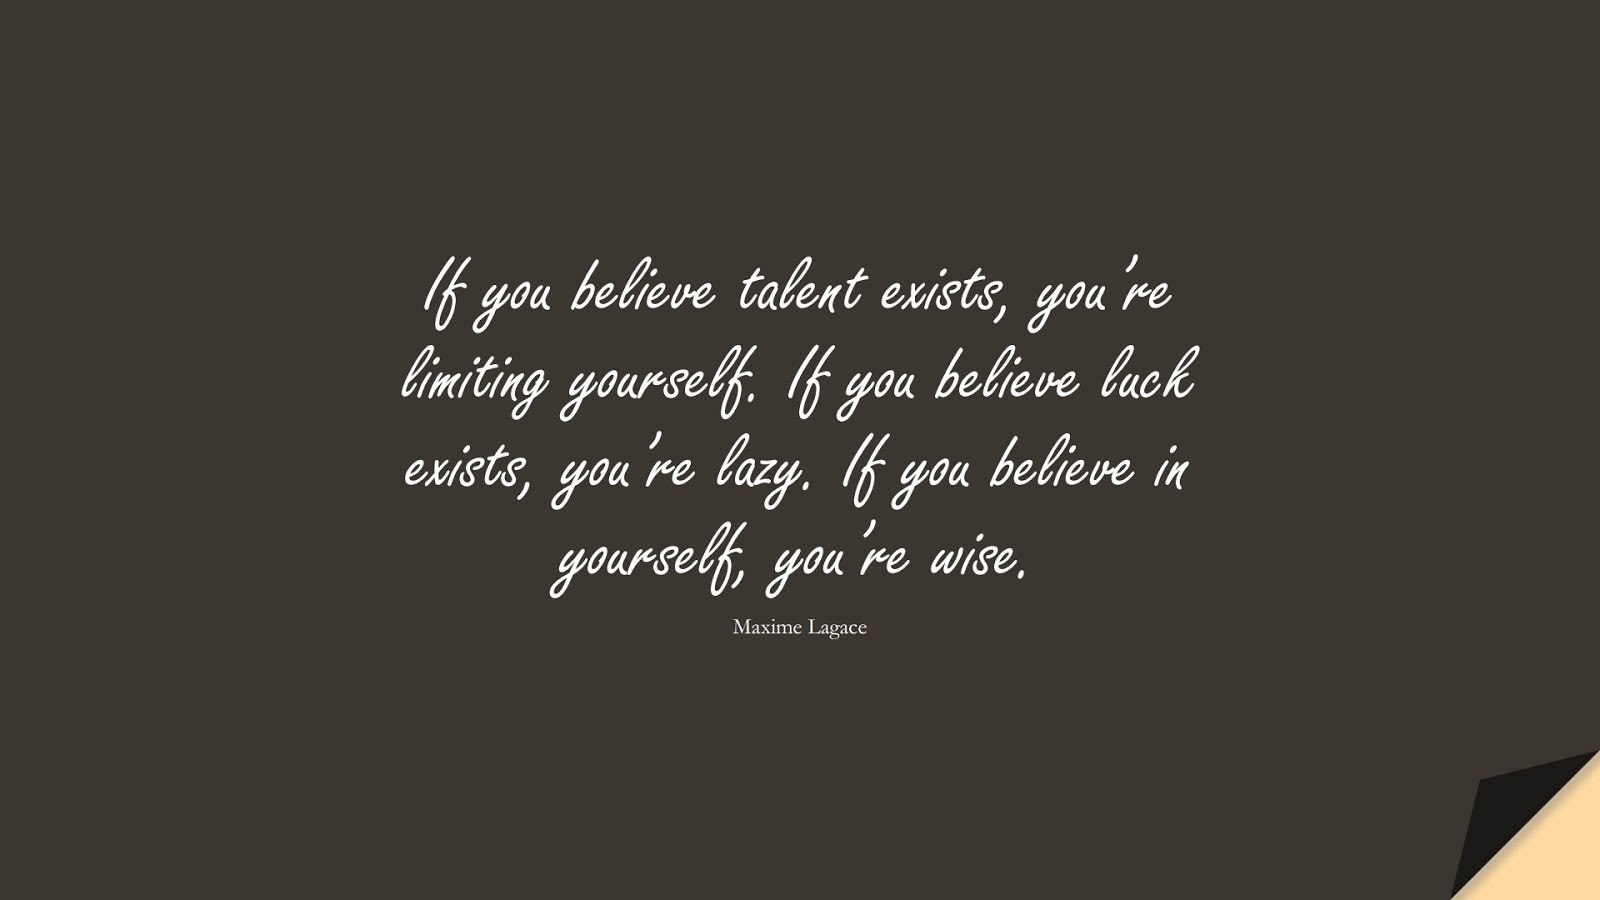 If you believe talent exists, you're limiting yourself. If you believe luck exists, you're lazy. If you believe in yourself, you're wise. (Maxime Lagace);  #PerseveranceQuotes